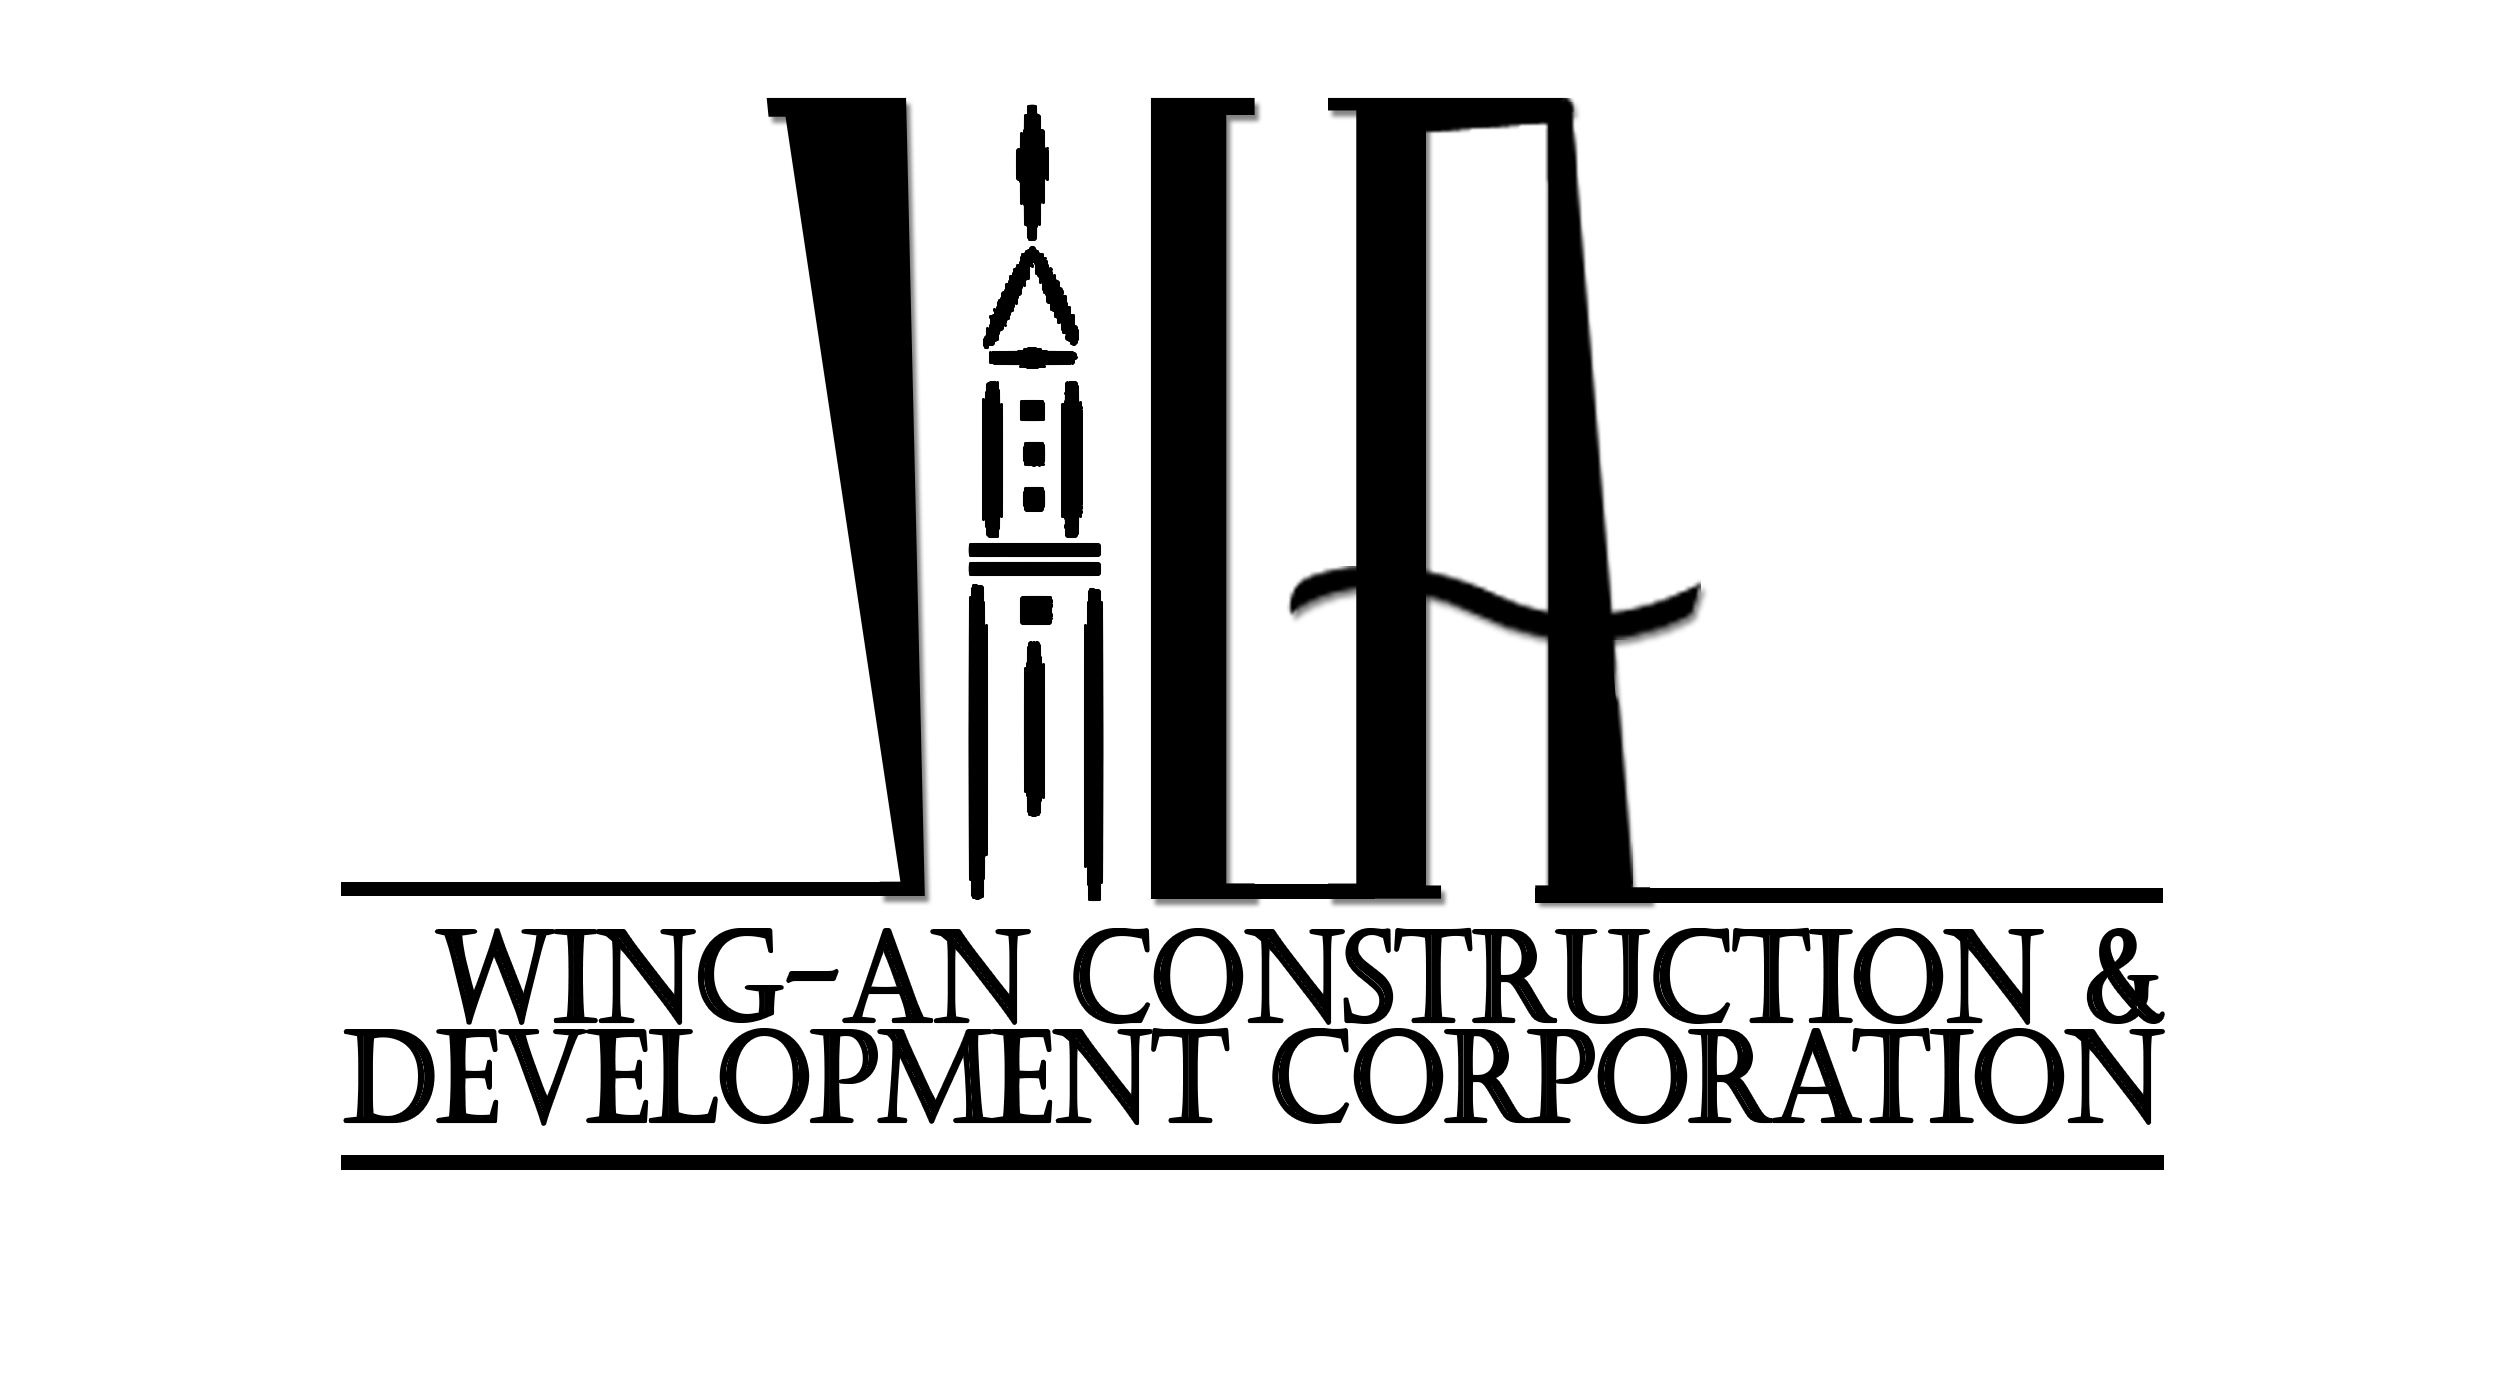 Wing-An Construction & Development